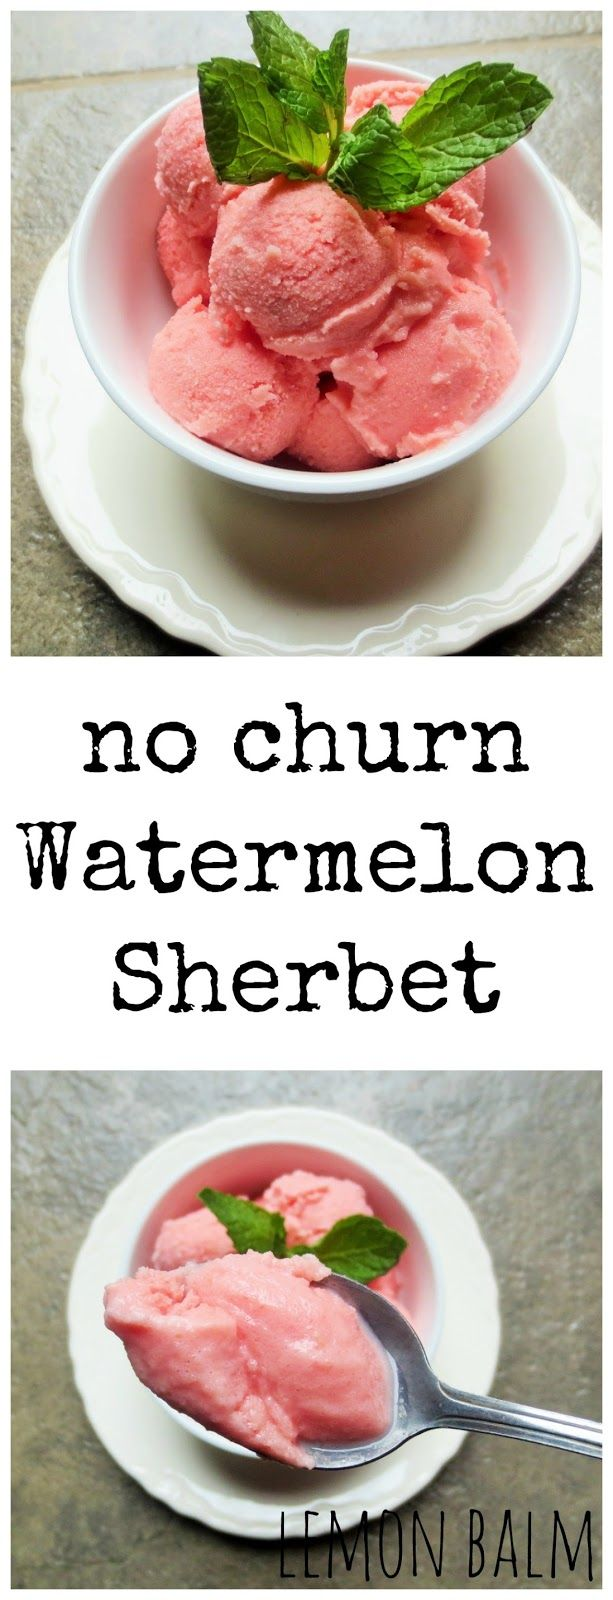 Lemon Balm: No Churn Watermelon Sherbet